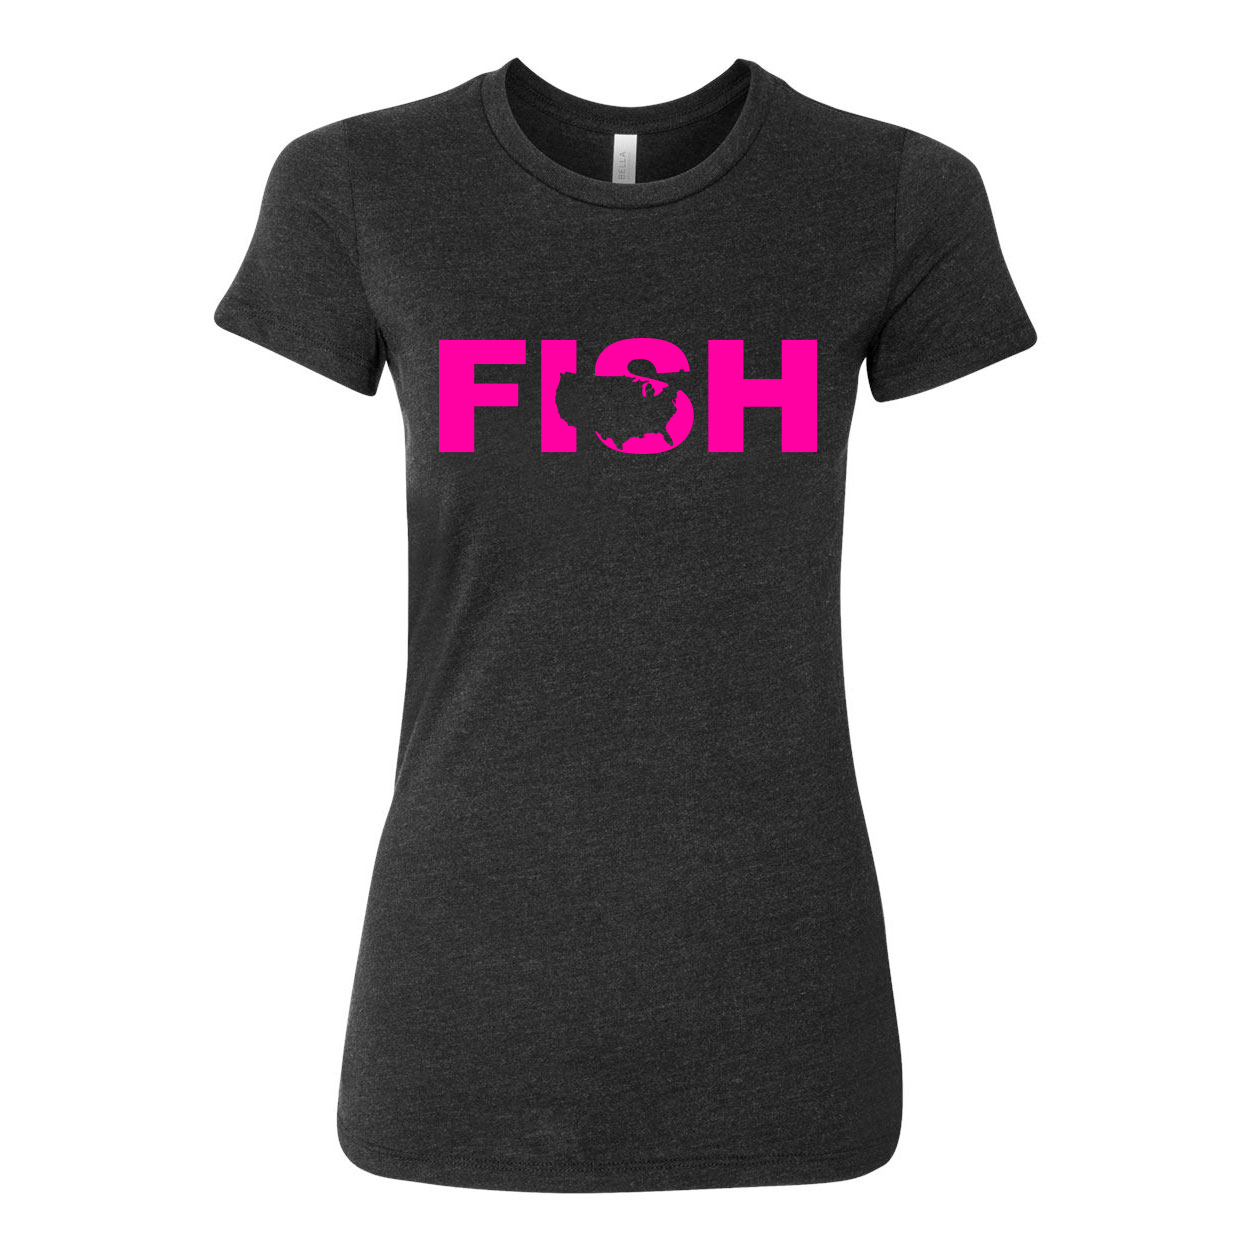 Fish United States Women's Classic Fitted Tri-Blend T-Shirt Dark Heather Gray (Pink Logo)